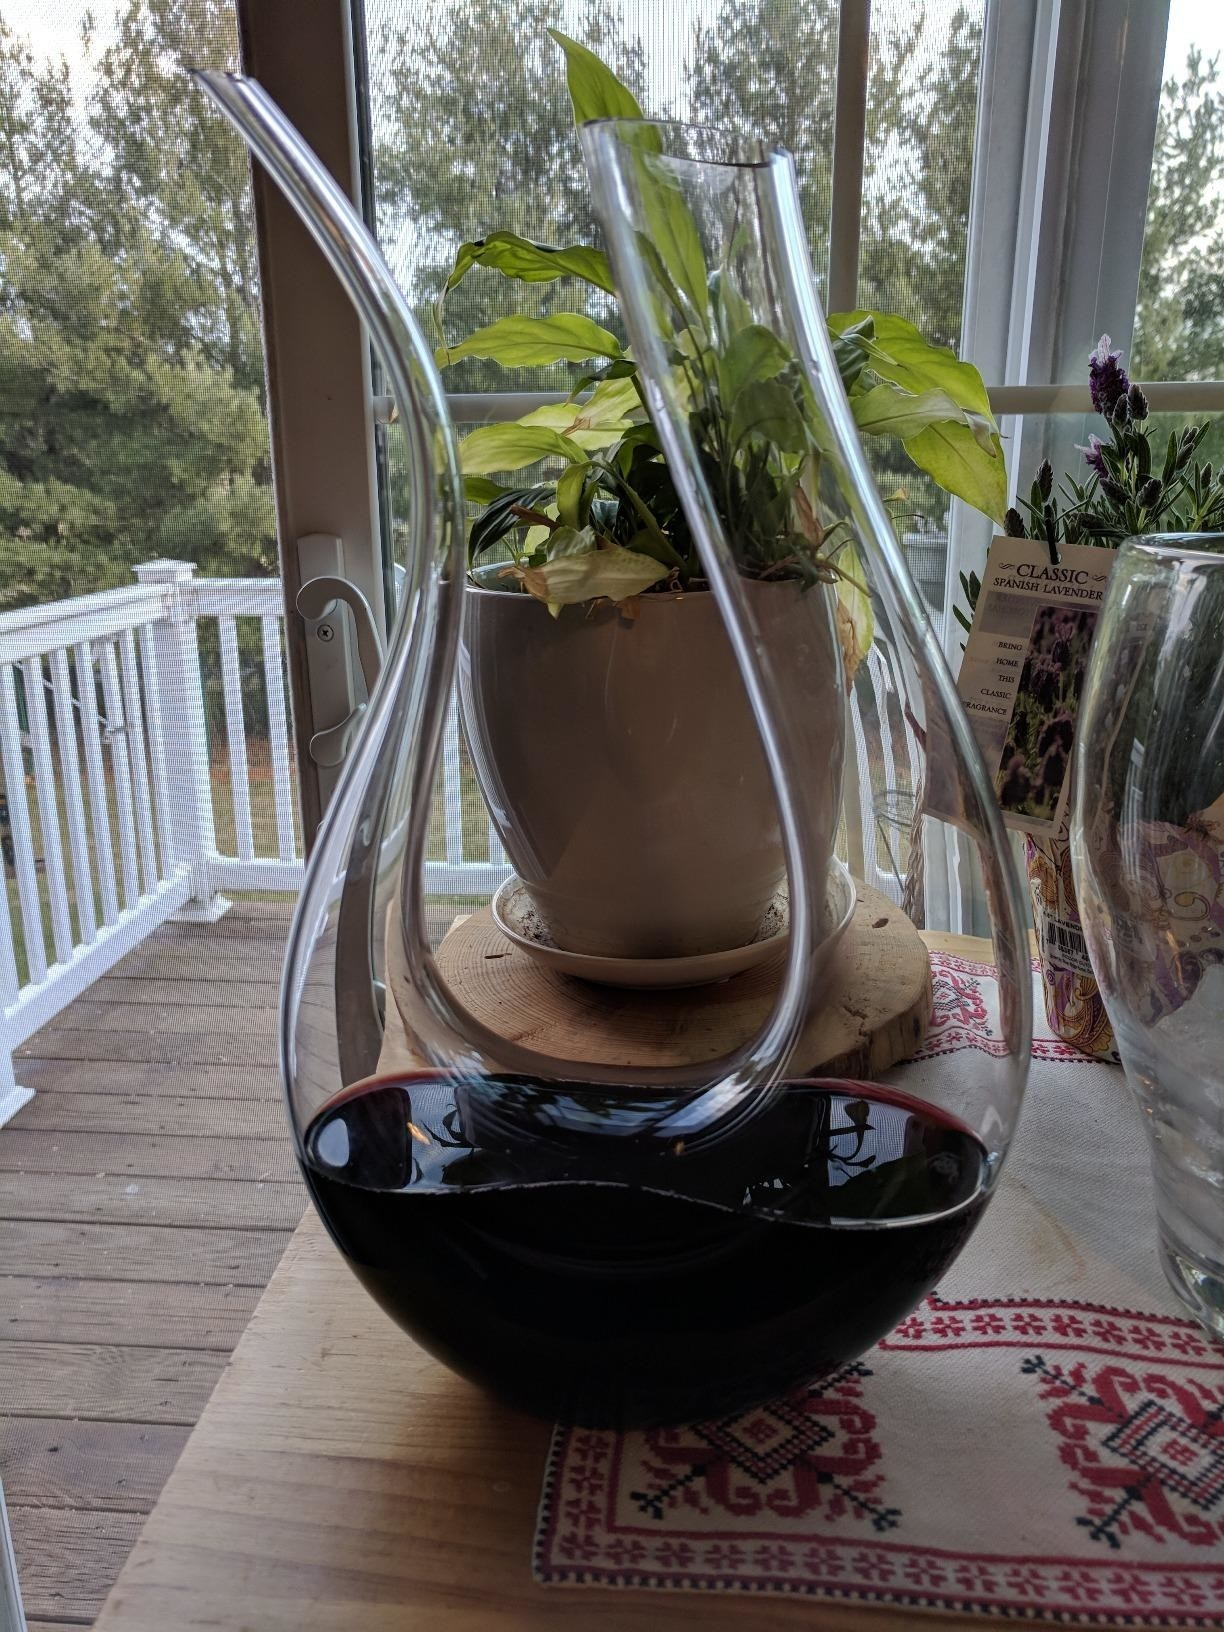 reviewer image of the u-shaped glass decanter with one side thicker than the other and wine at the bottom of it